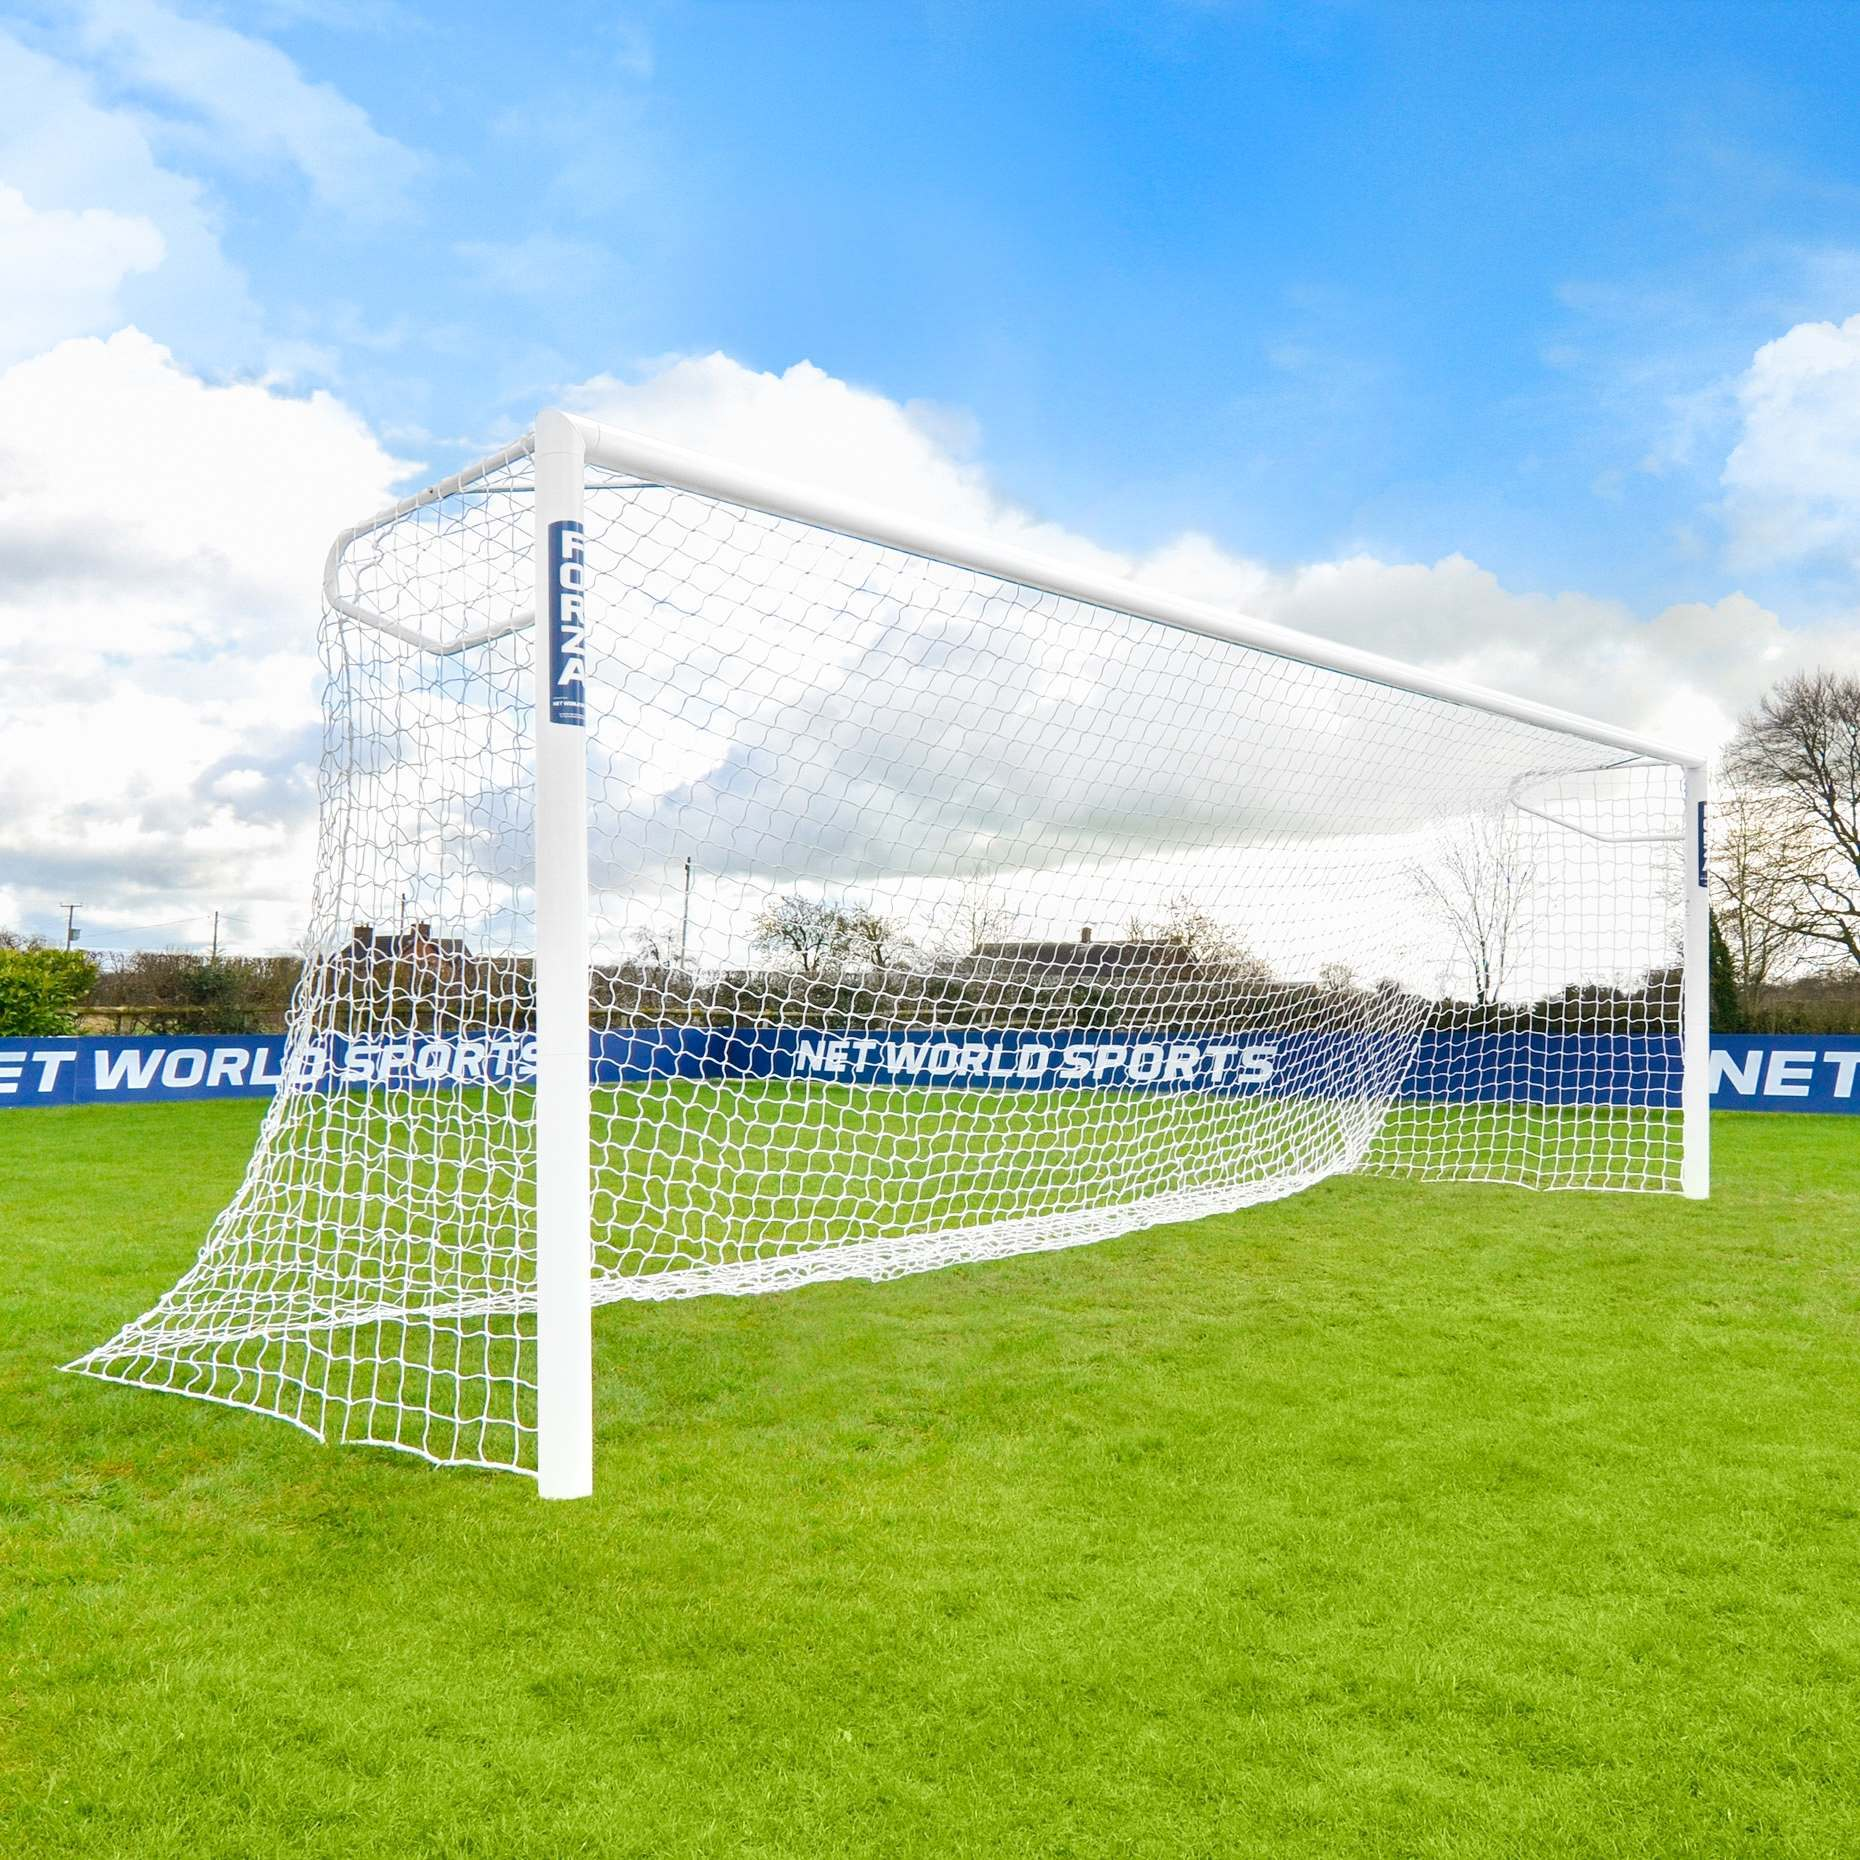 6.4m x 2.1m (21ft x 7ft) FORZA Alu110 Socketed Football Goal